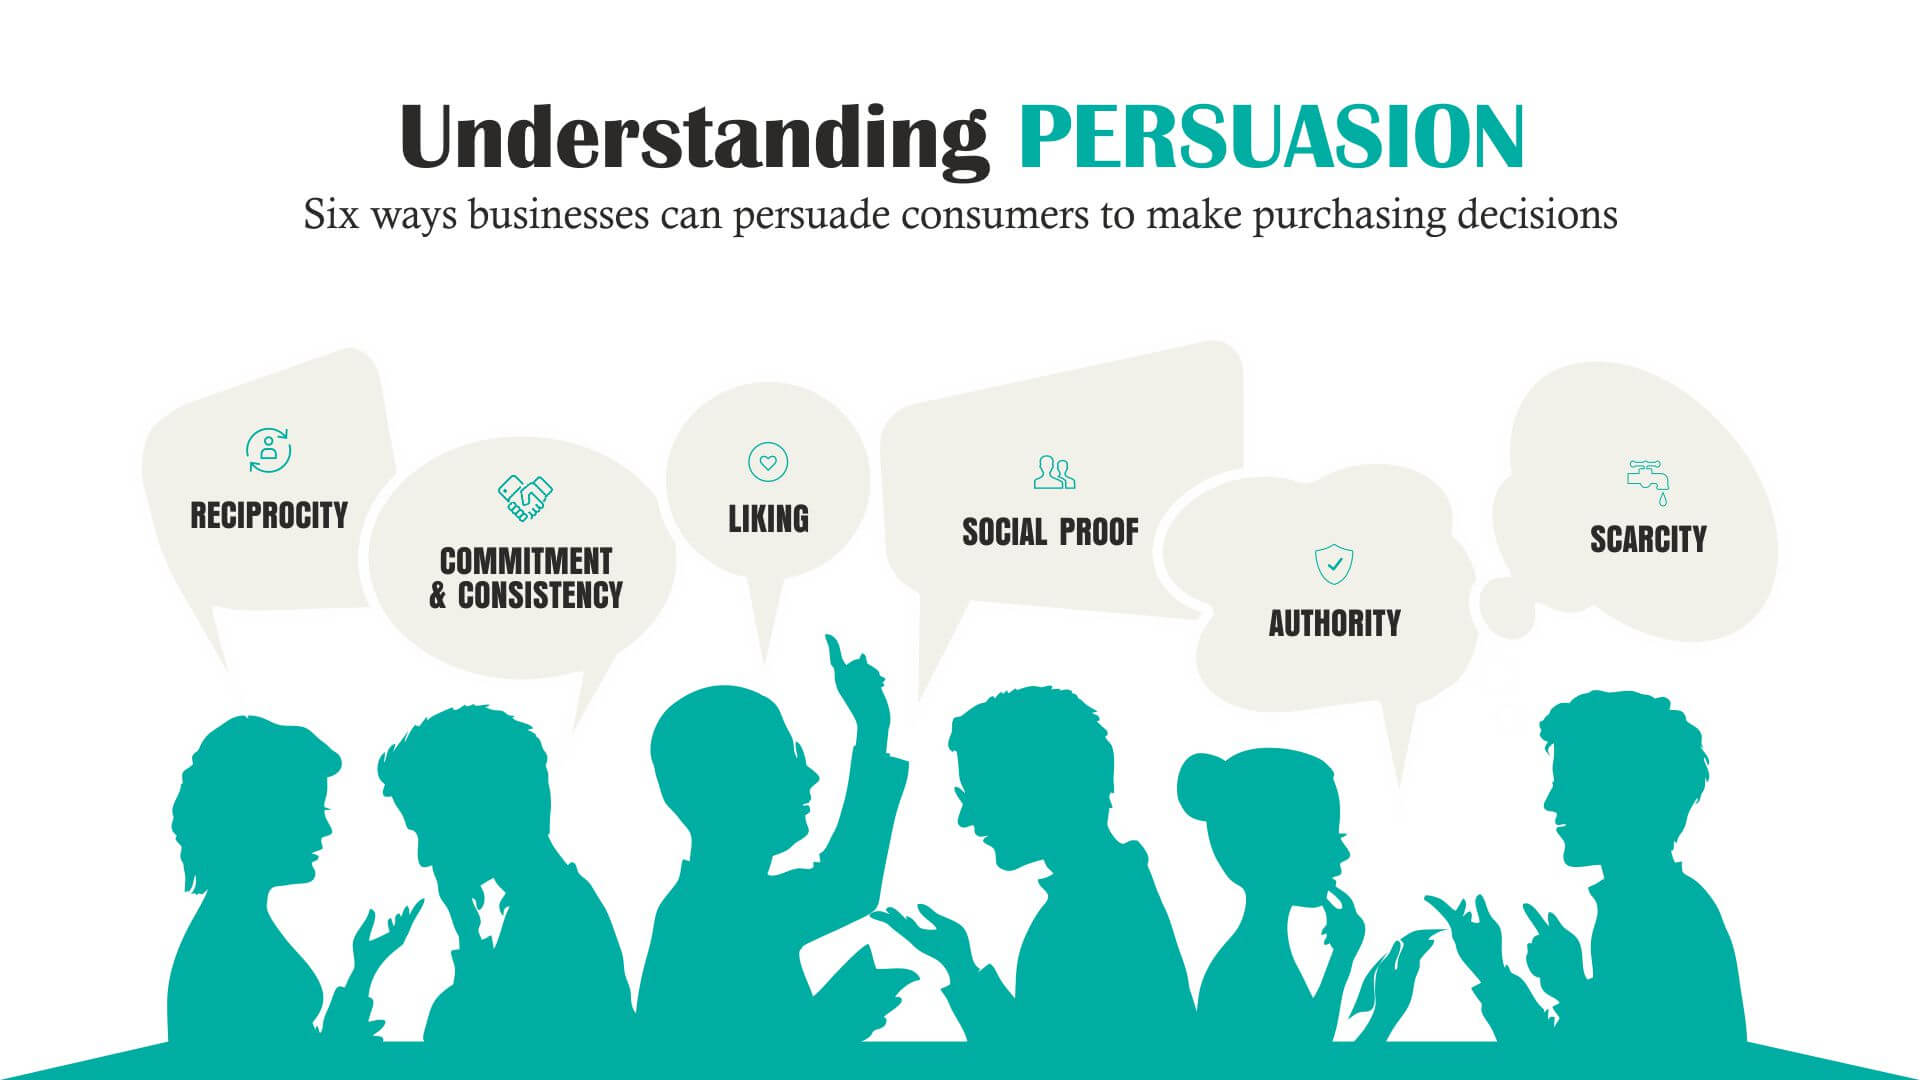 6 Secrets of Persuasion That Will Help You Sell More